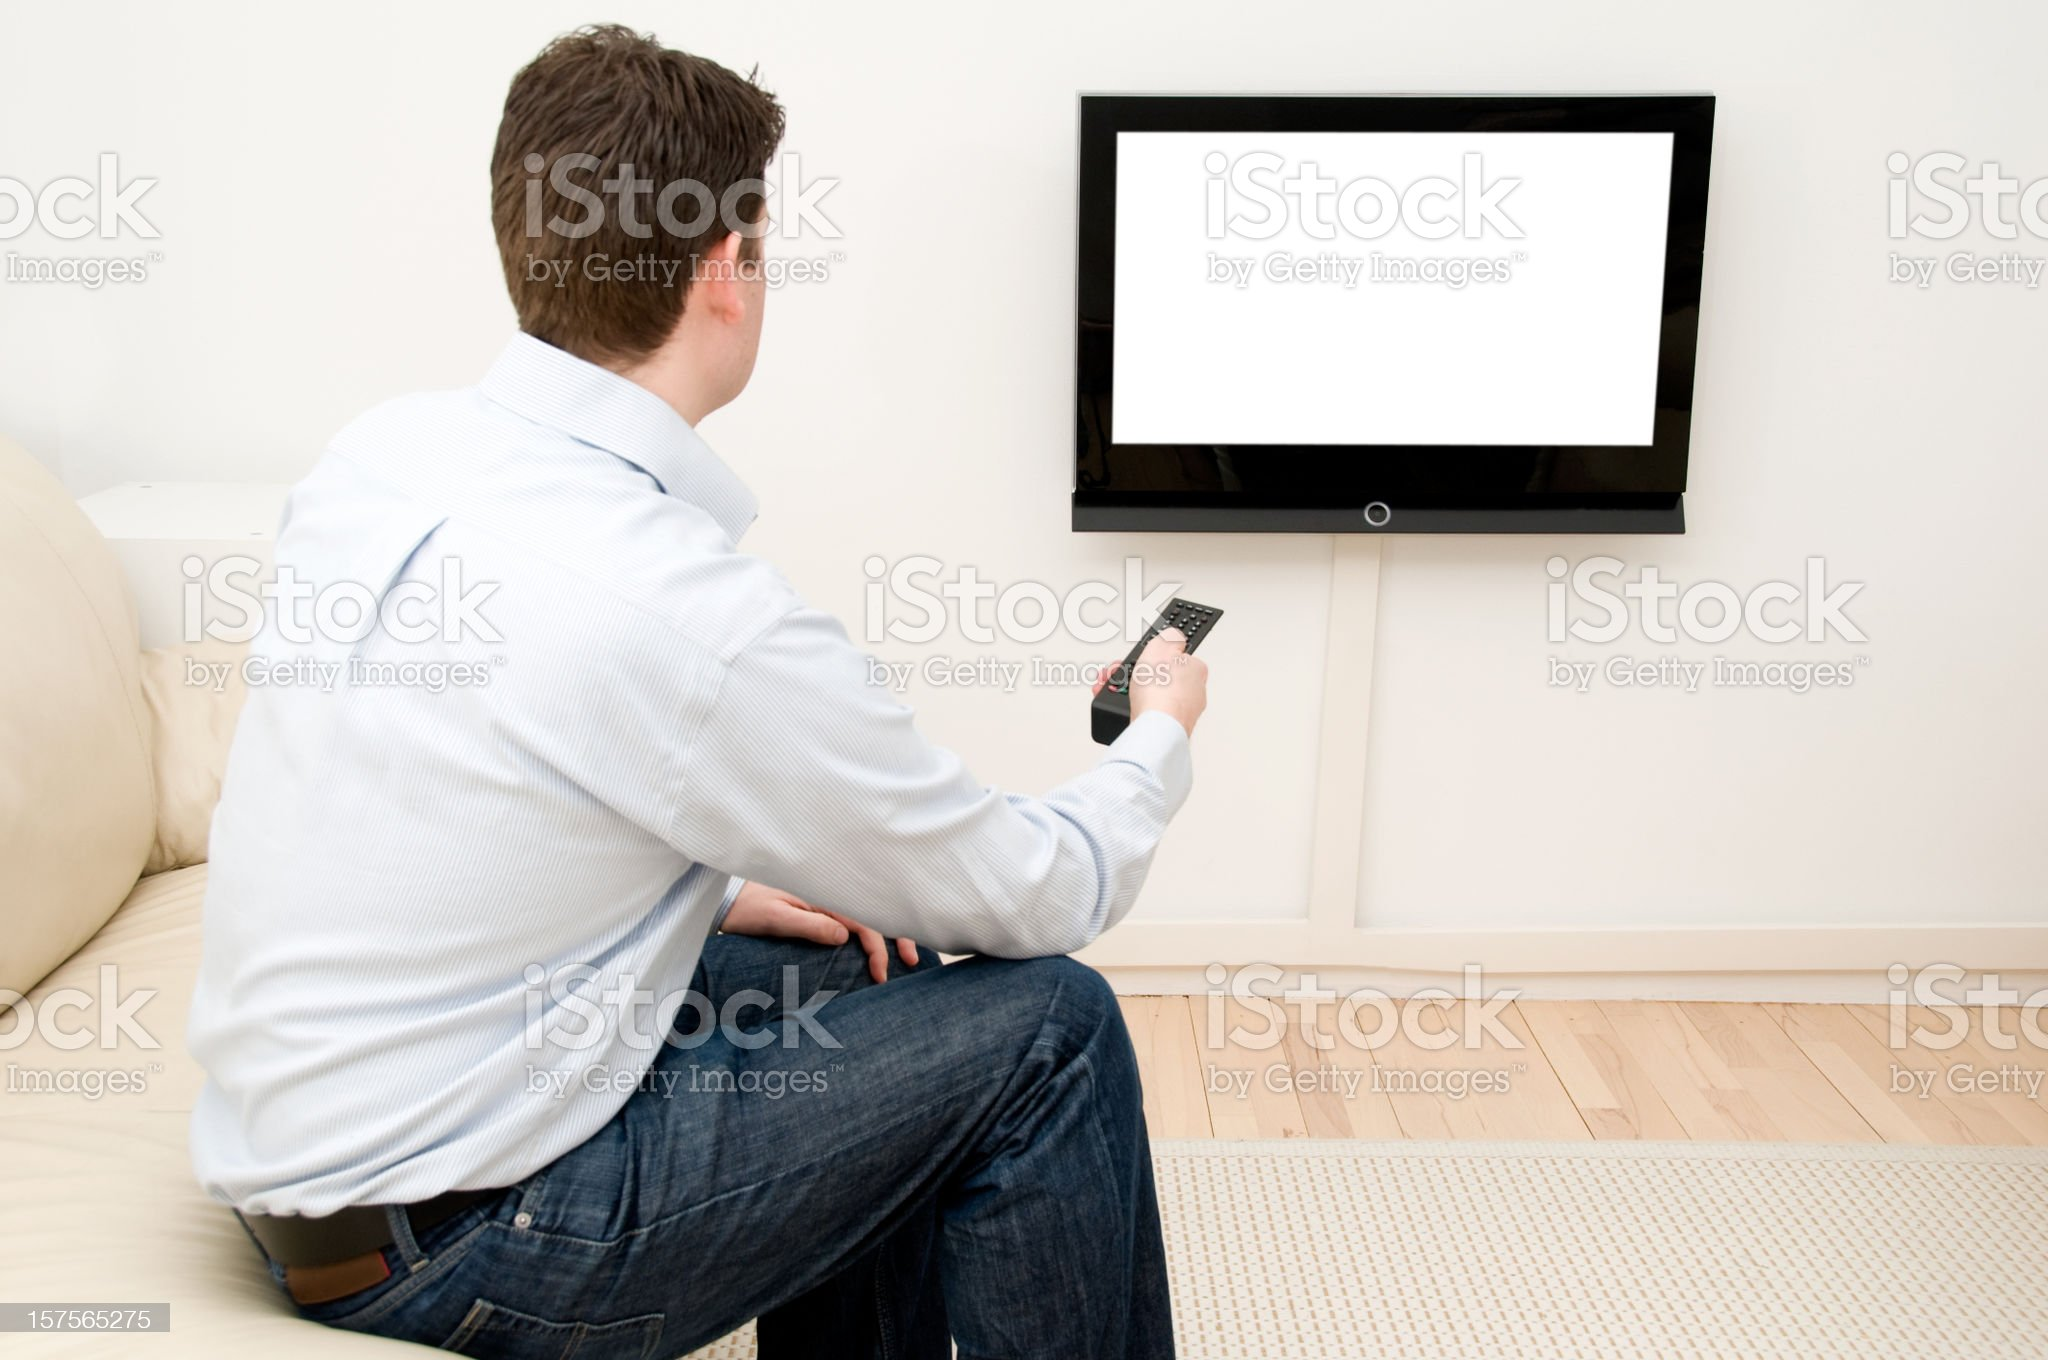 Man uses remote control to change channel on flatscreen tv royalty-free stock photo